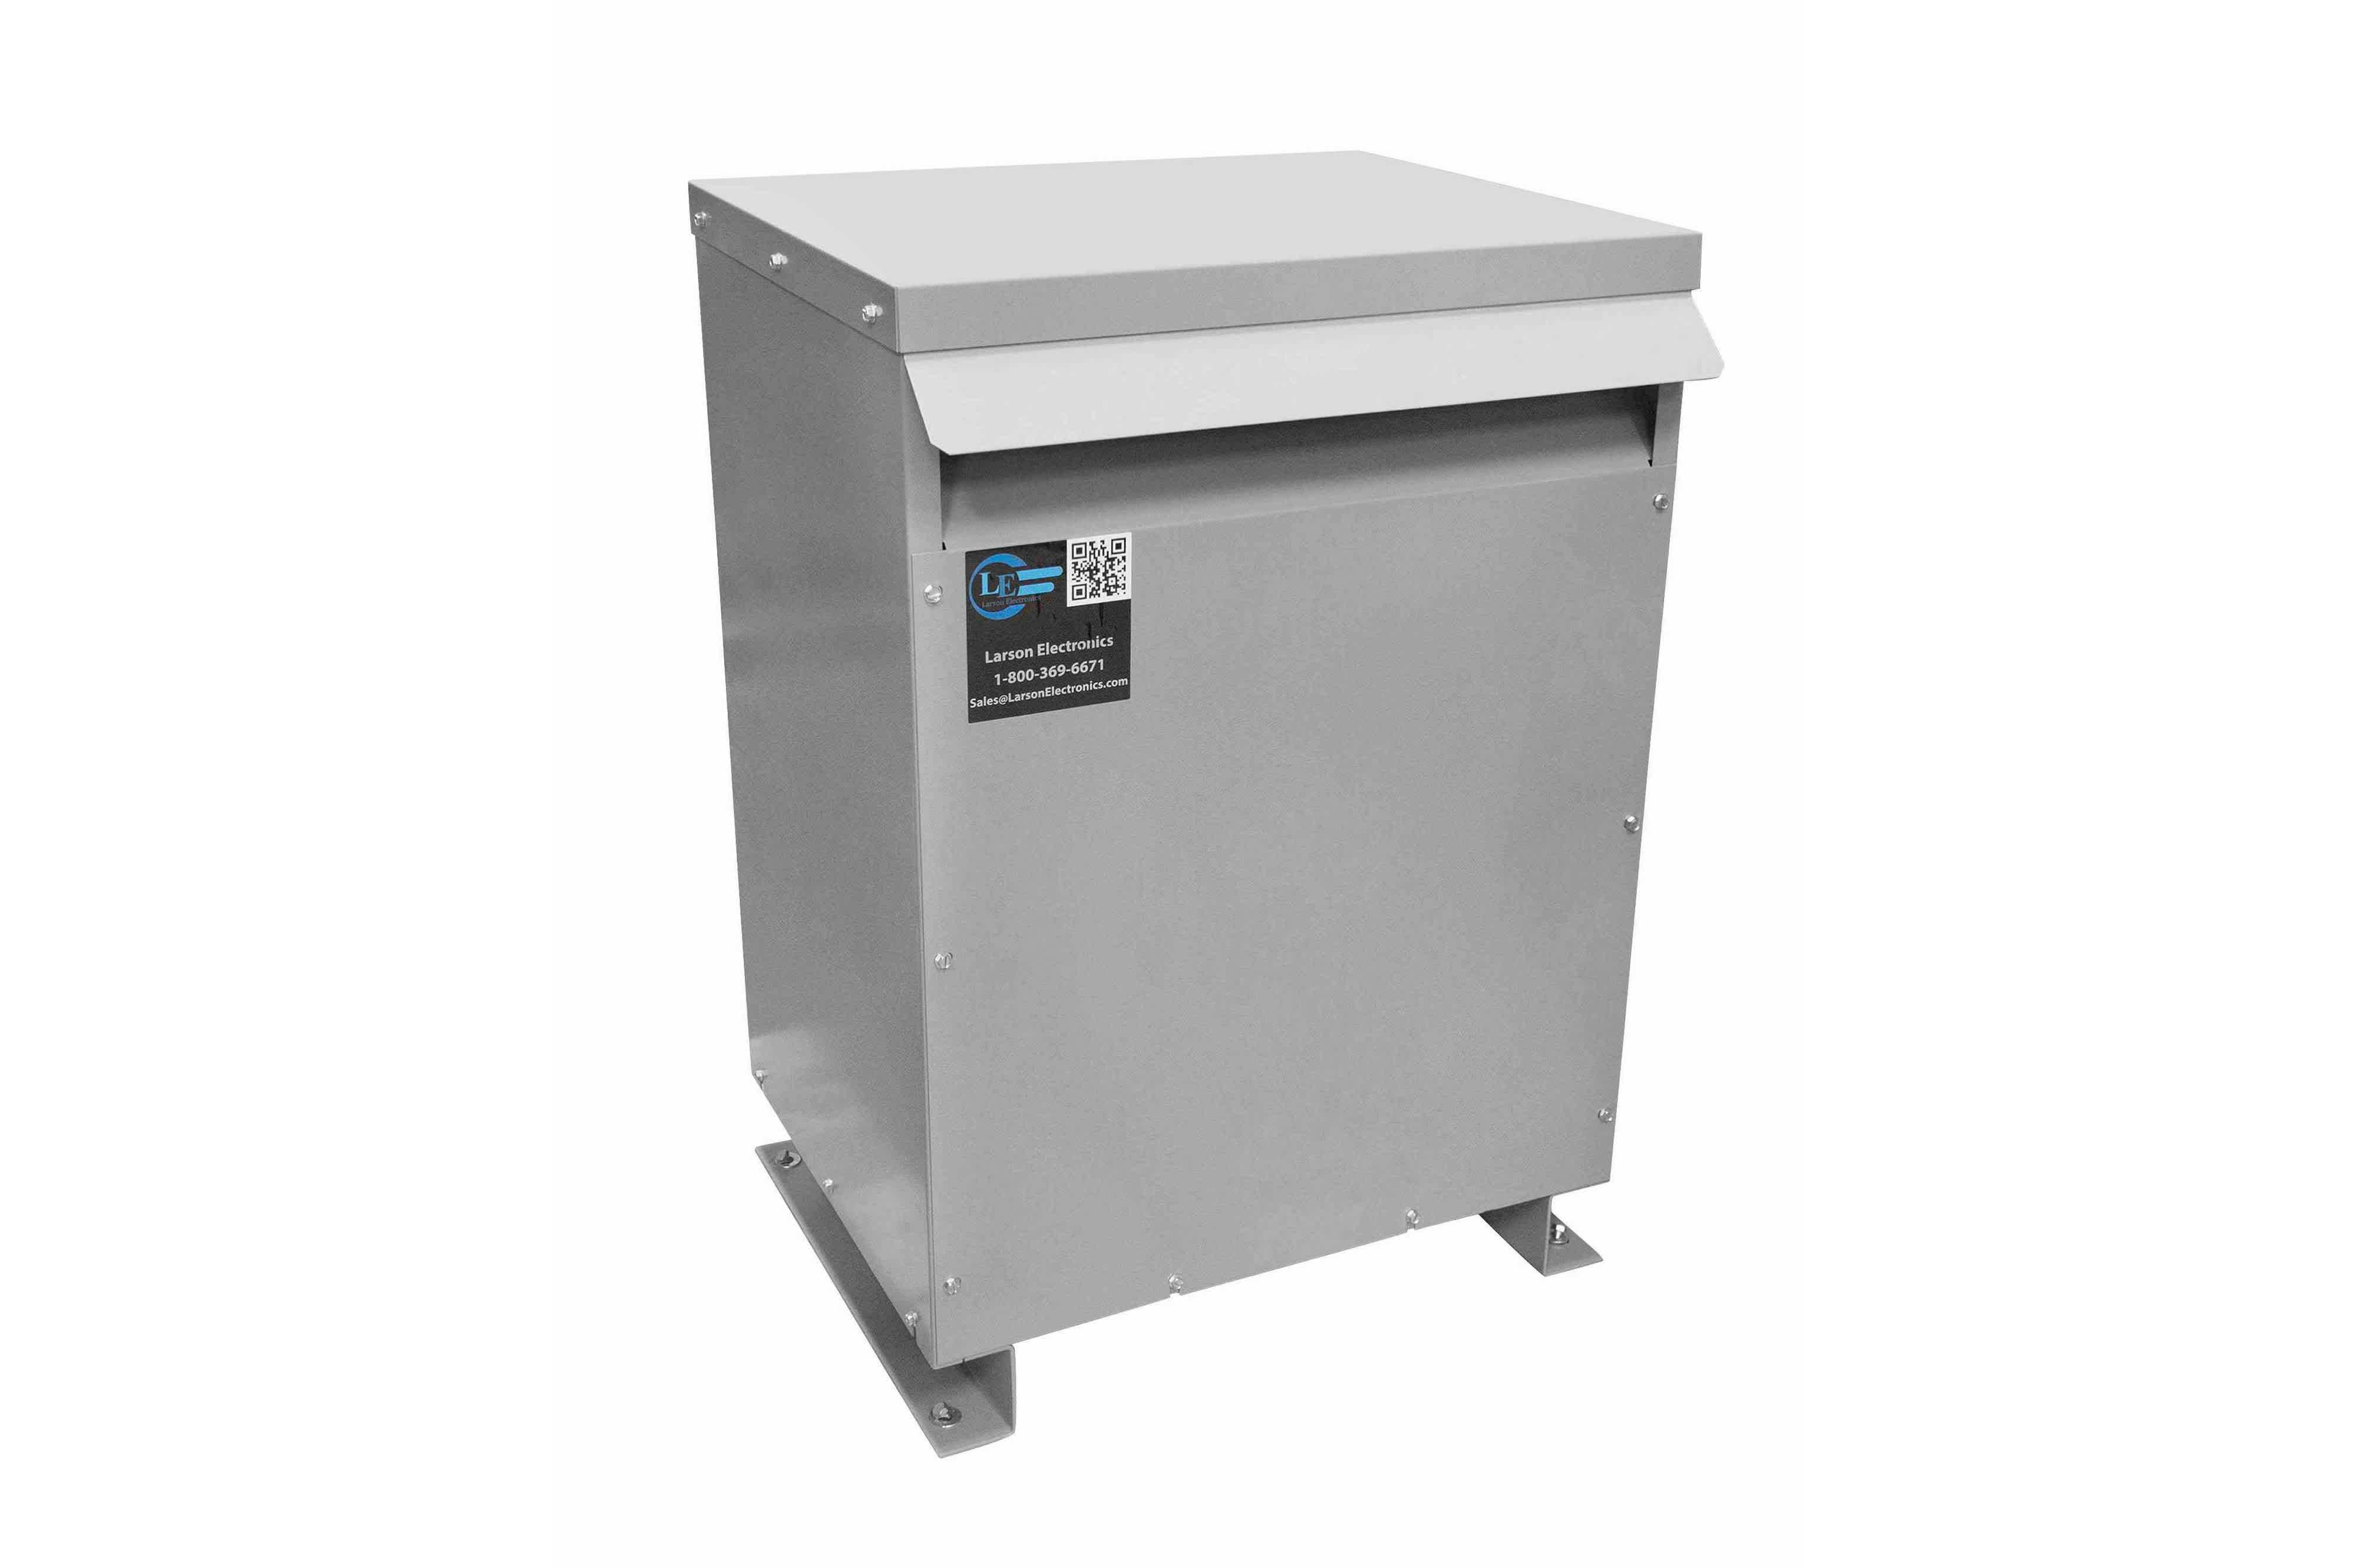 52.5 kVA 3PH Isolation Transformer, 380V Wye Primary, 240V/120 Delta Secondary, N3R, Ventilated, 60 Hz